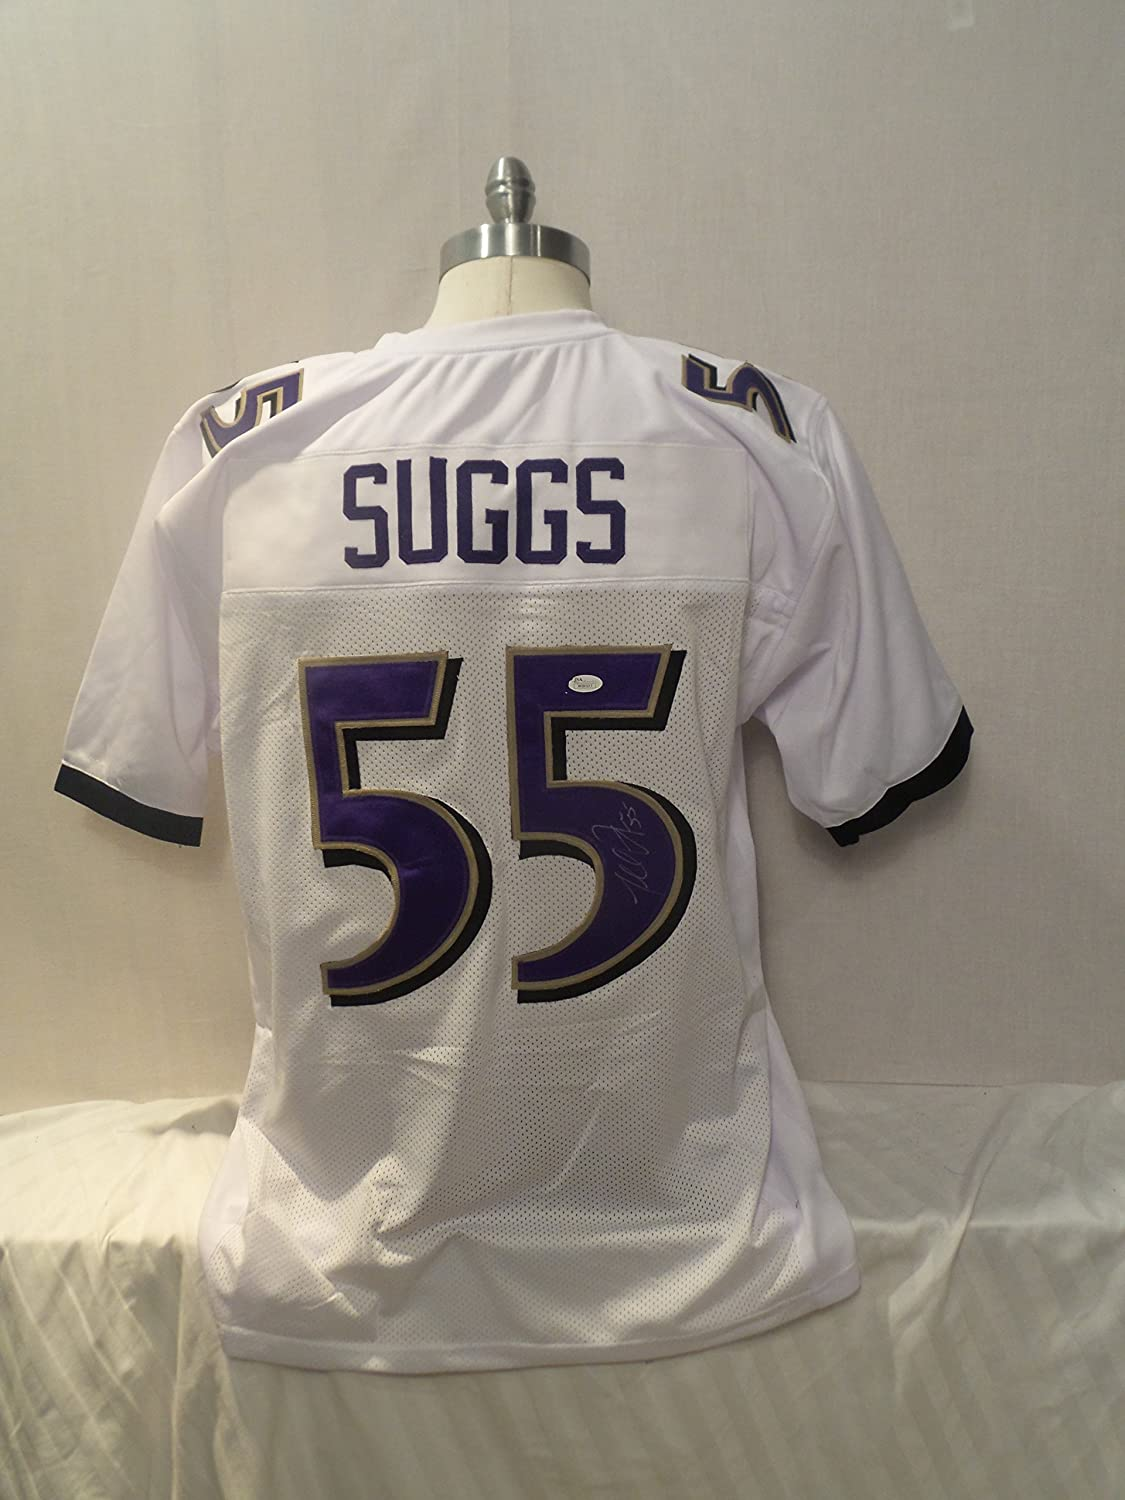 cheaper d524f 27aa8 Terrell Suggs Signed Baltimore Ravens White Autographed ...